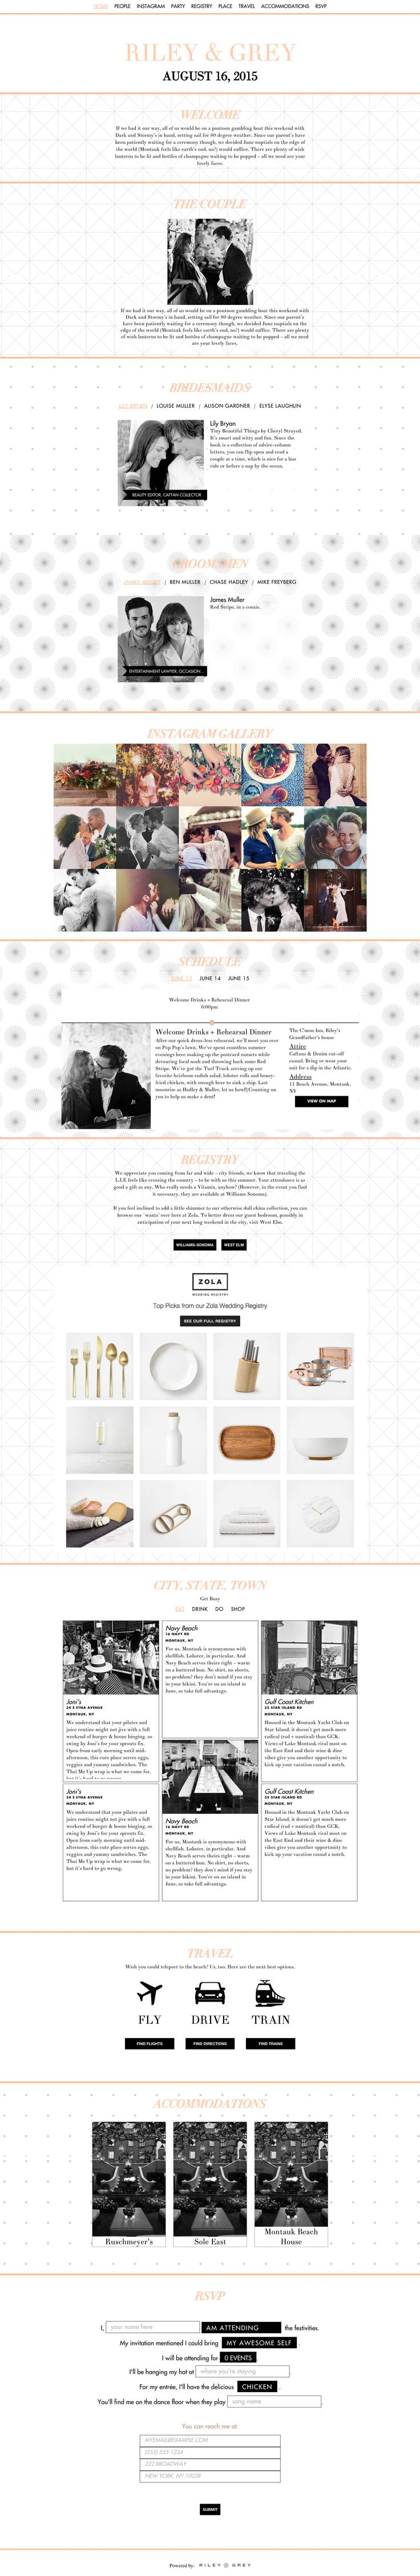 """""""Copper Tone"""" wedding website design by Riley & Grey (graphic design, wedding planning, wedding website examples)"""